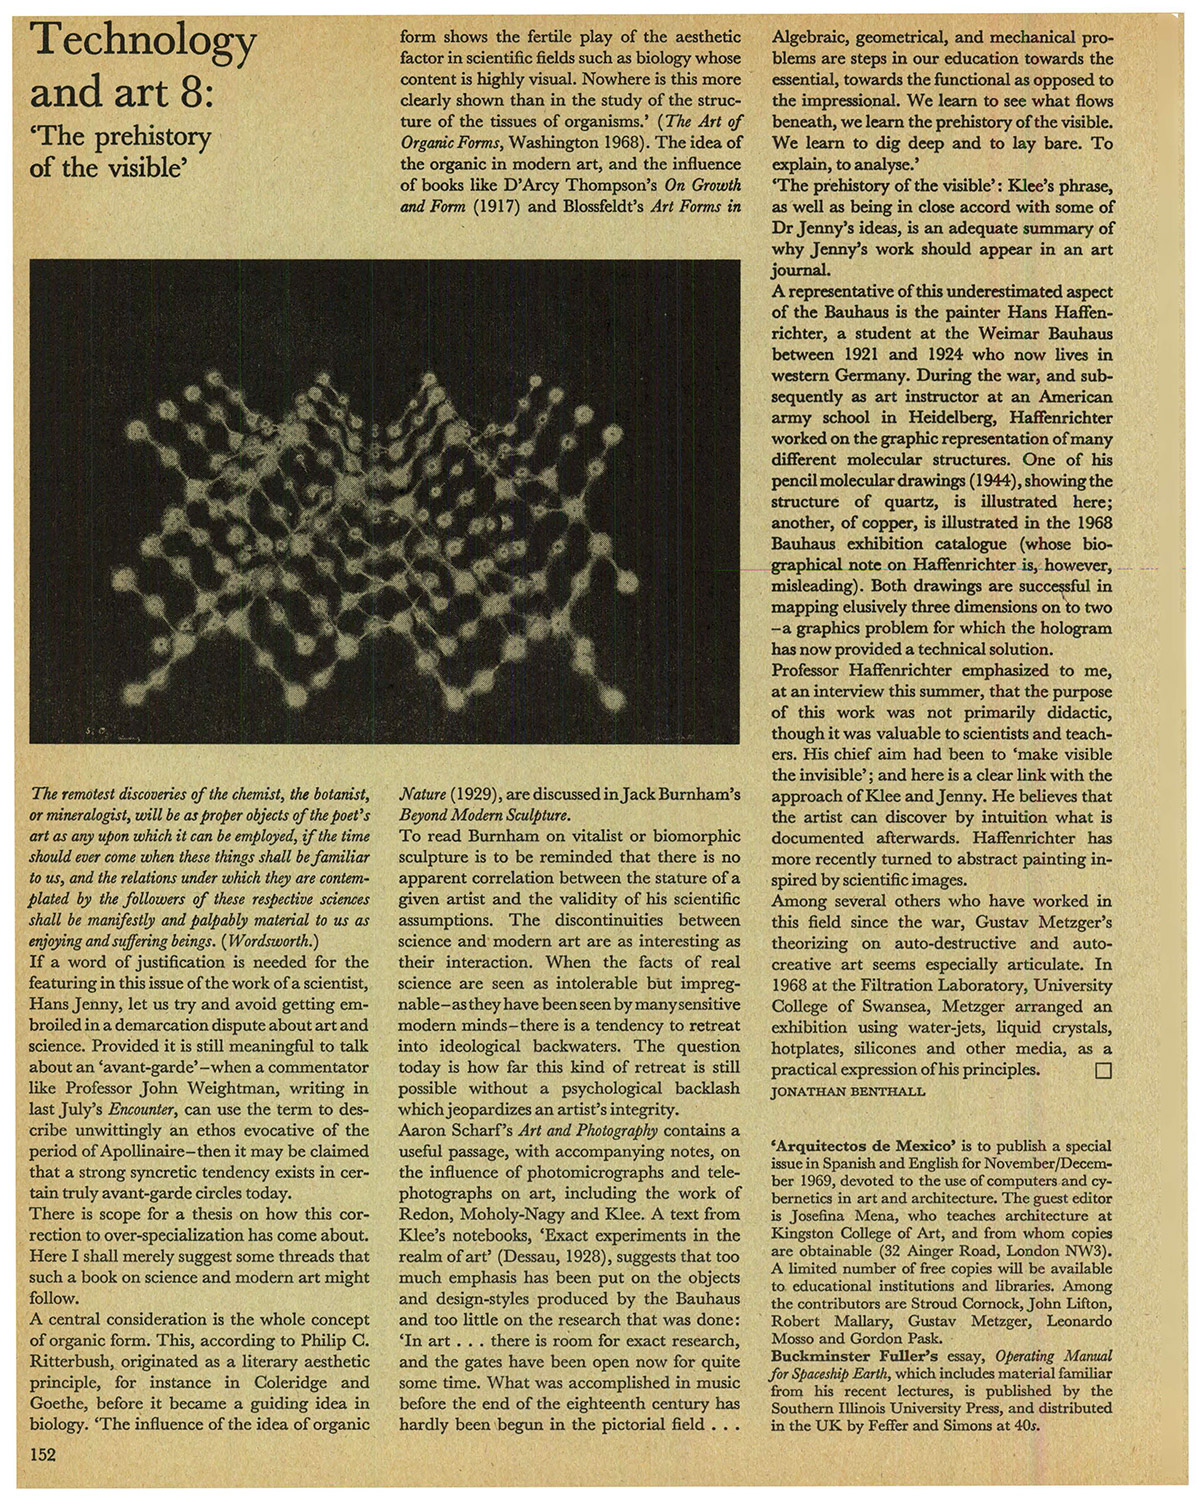 Technology and Art. Studio International, Vol 177, No 911, November 1969, p. 212